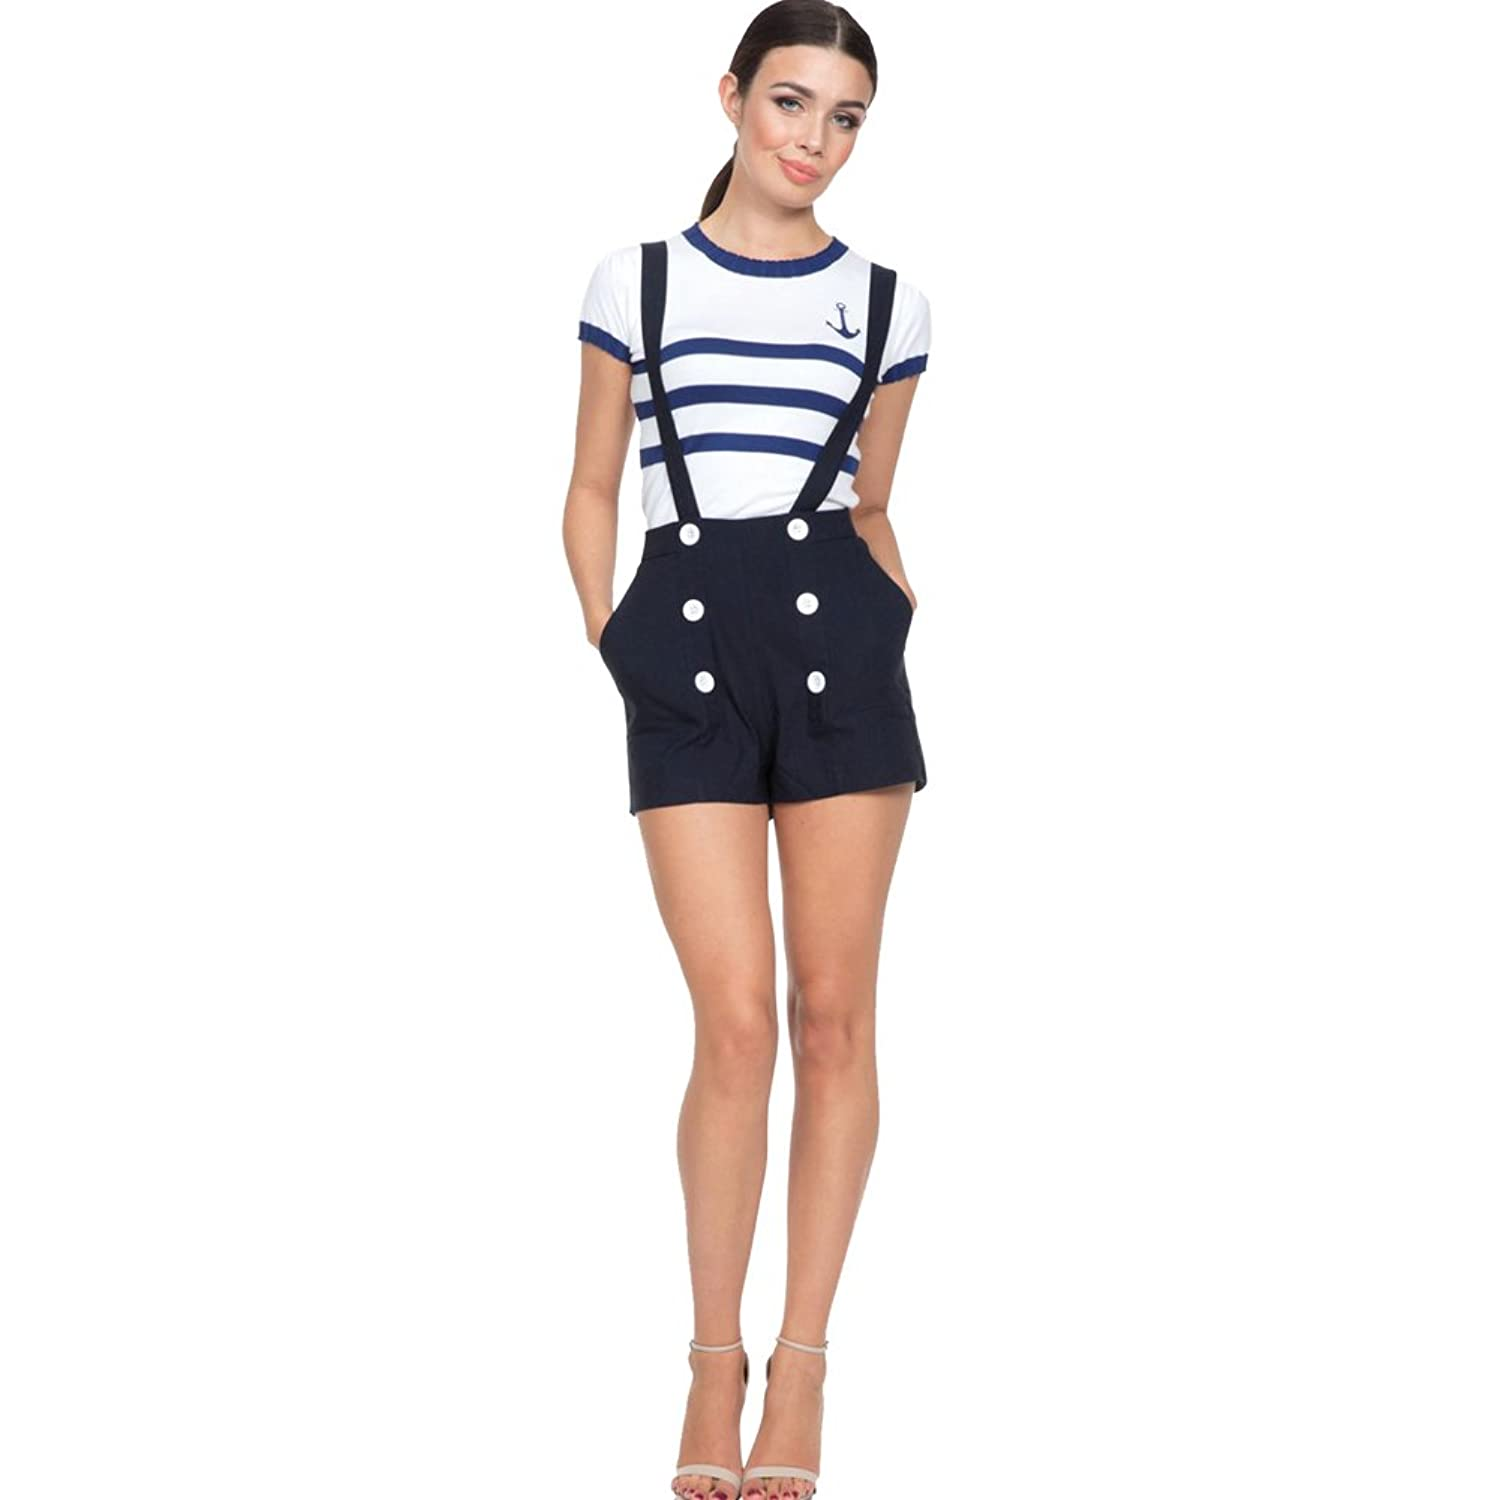 Agent Peggy Carter Costume, Dress, Hats Womens Voodoo Vixen DAISY Nautical Shorts Navy $48.95 AT vintagedancer.com